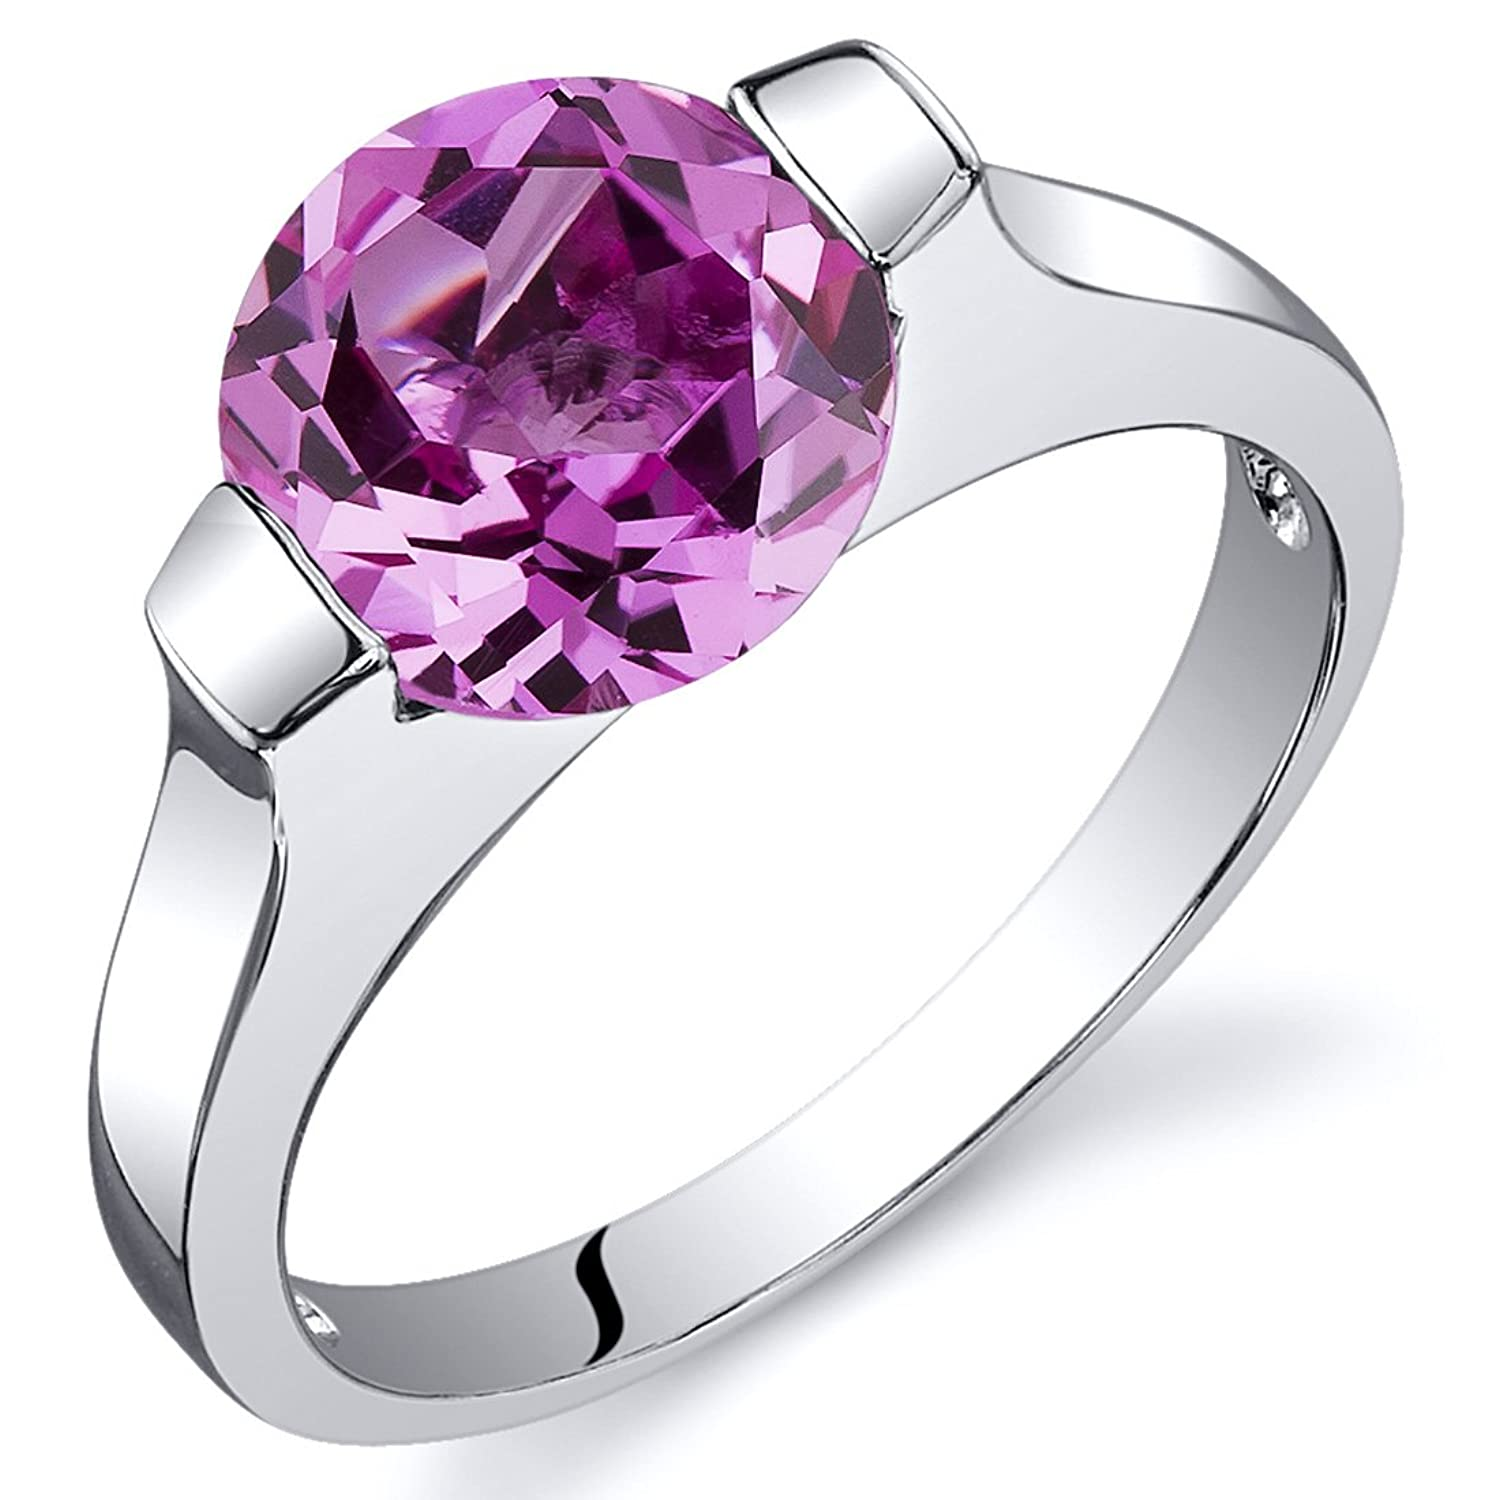 Created Pink Sapphire Bezel Ring Sterling Silver Rhodium Nickel Finish 2.75 Carats Sizes 5 to 9